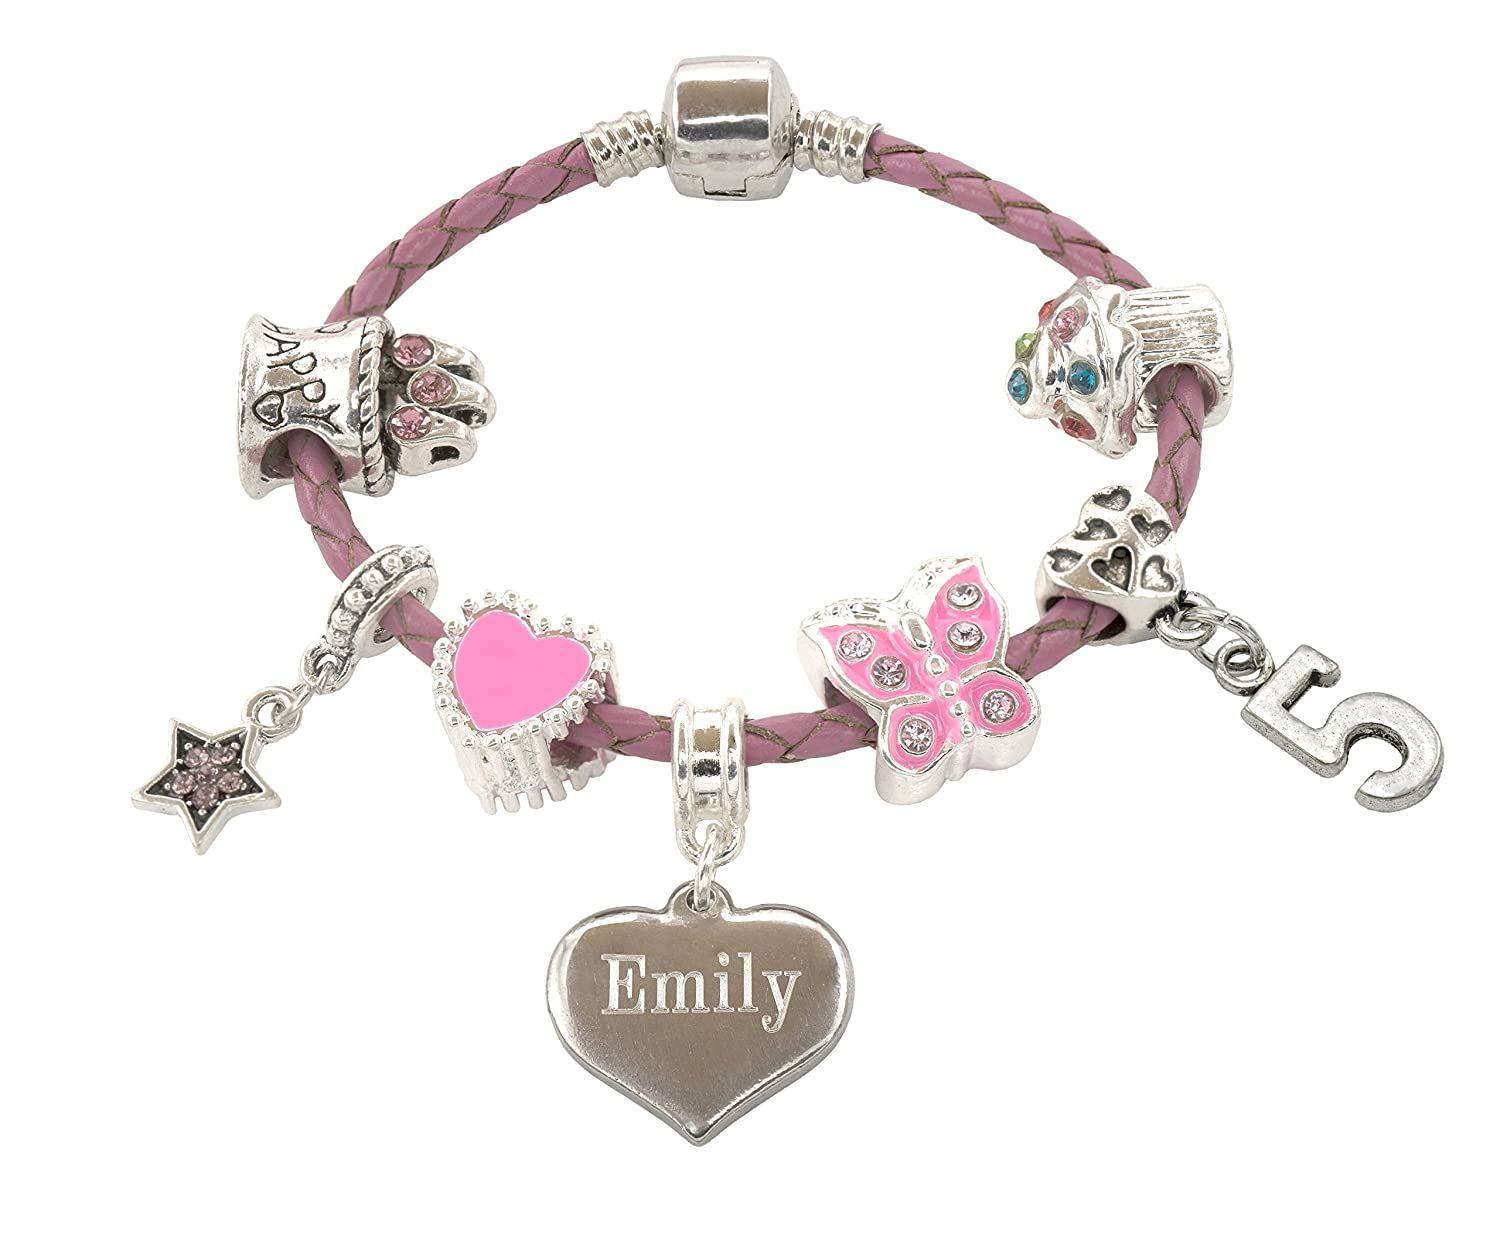 Children's Personalised & Engraved 5th Birthday Bracelet For Girls with Gift Box - Girls Jewellery Jewellery Hut SSBDAY5-16